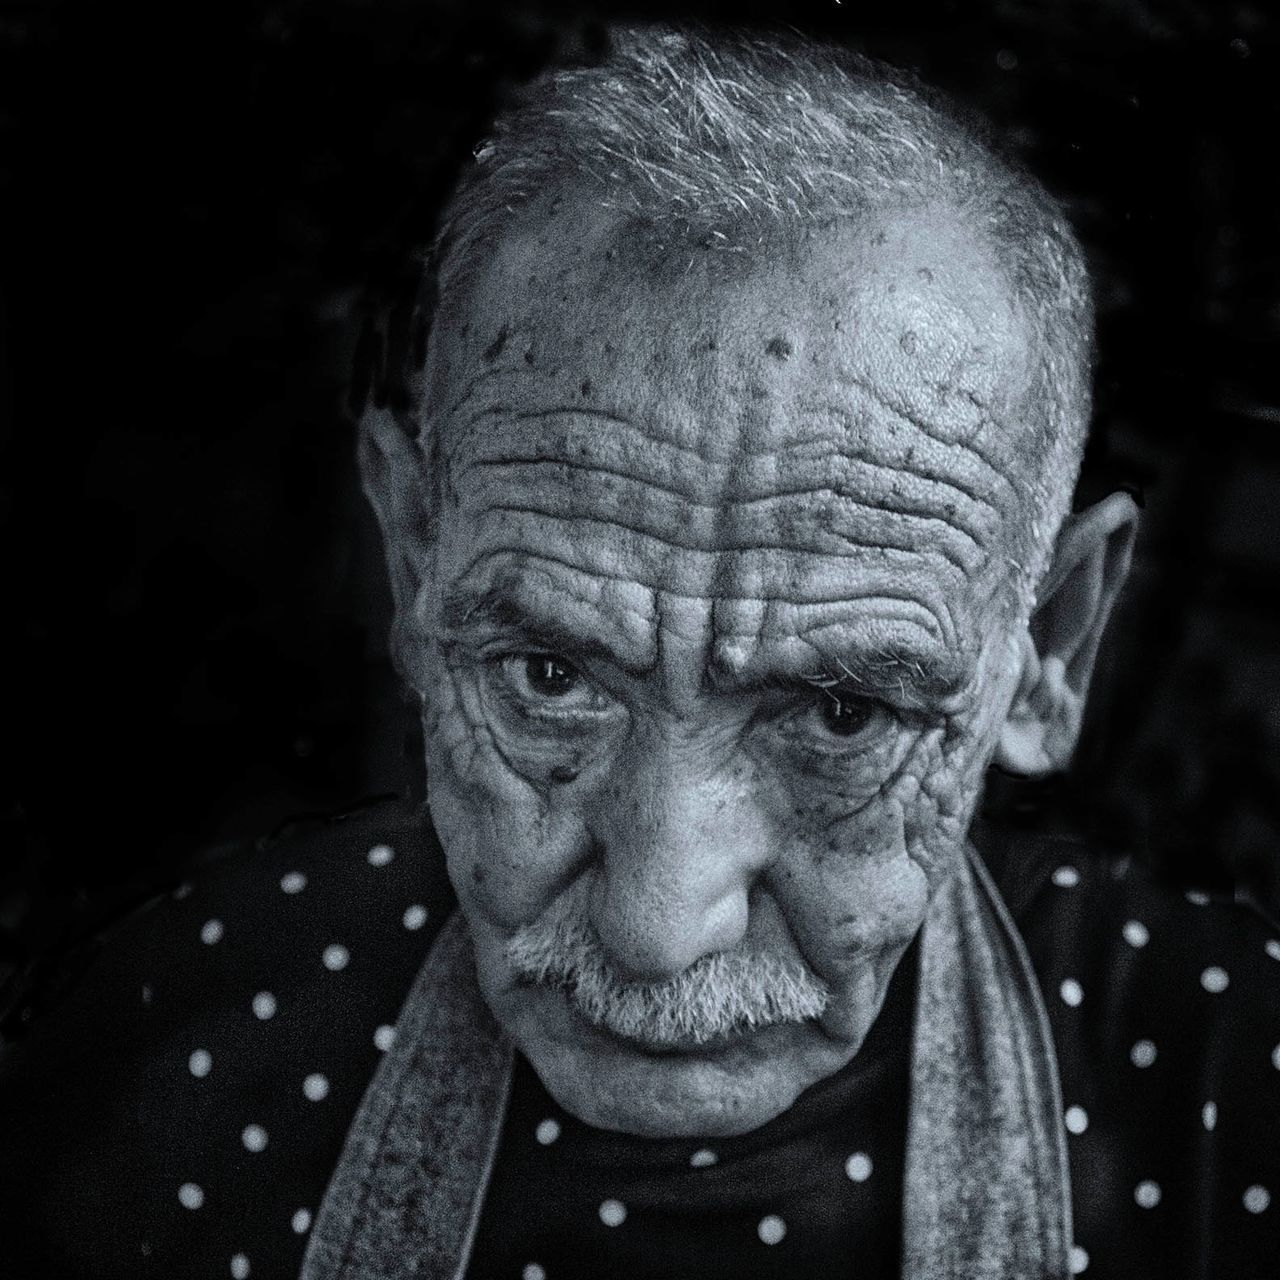 senior adult, senior men, one senior man only, portrait, looking at camera, wrinkled, one person, headshot, real people, close-up, one man only, outdoors, day, only men, adult, adults only, people